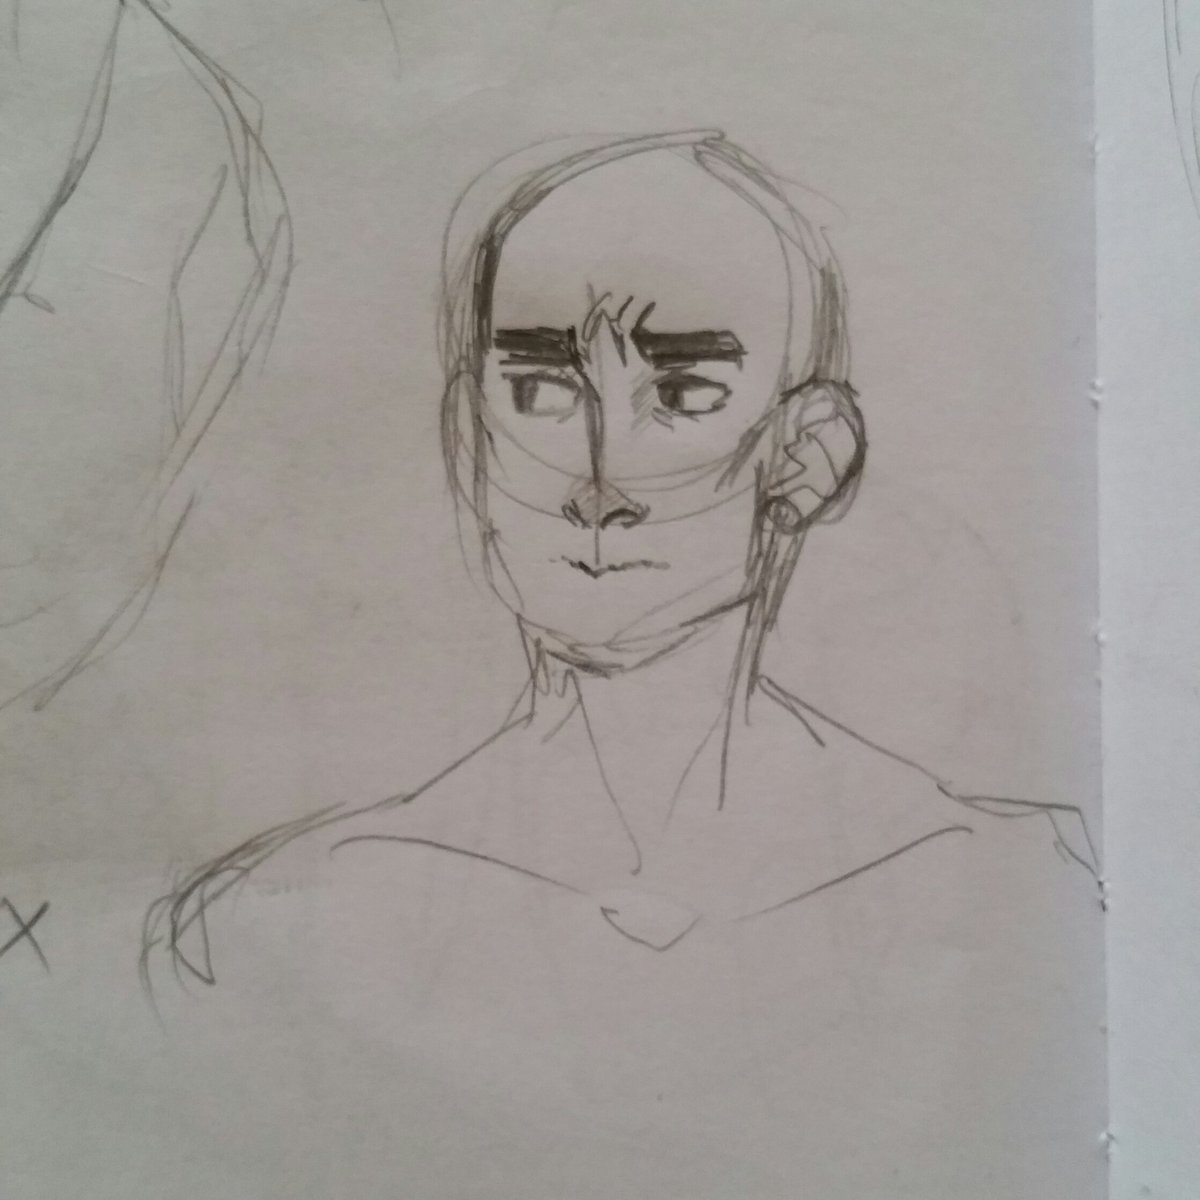 Gem1ny Blm On Twitter Sketches Drawing Sketch People Cat